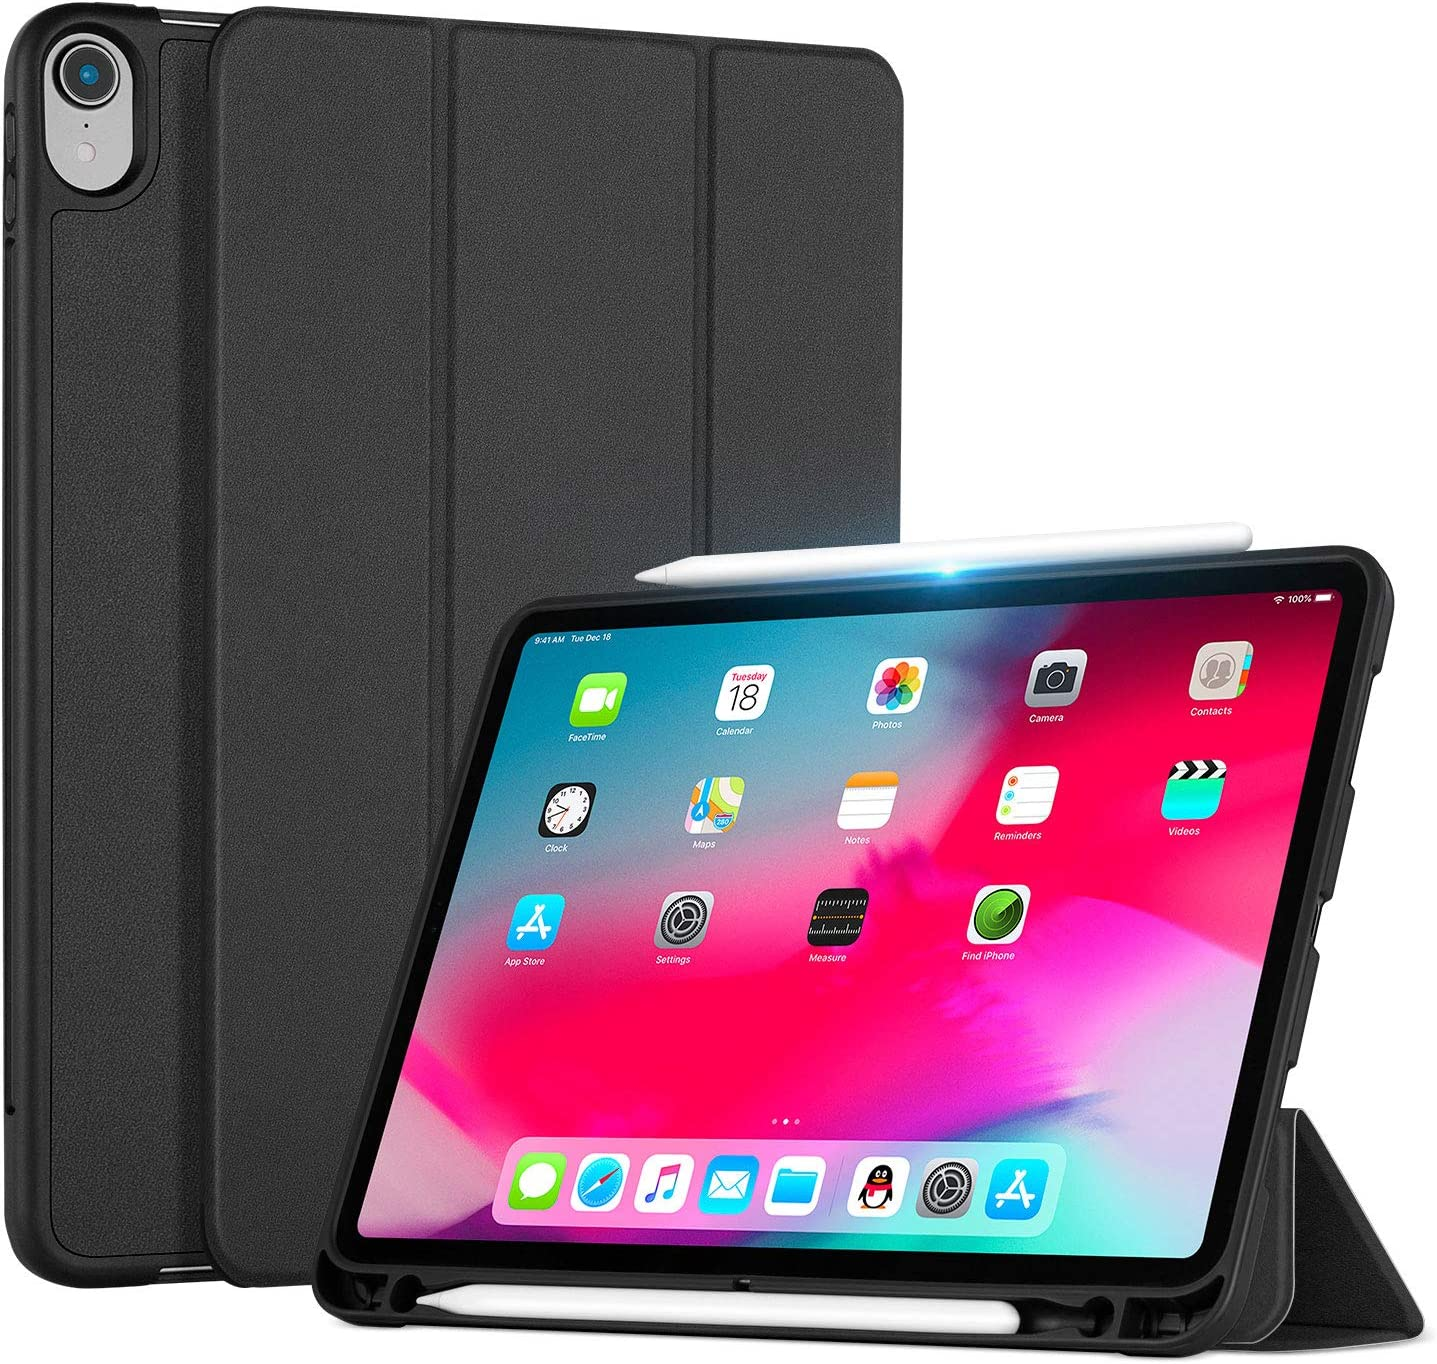 Ayotu Case for iPad Pro 12.9 inch 2018 Release Suppo Max 43% OFF Model - Old High order